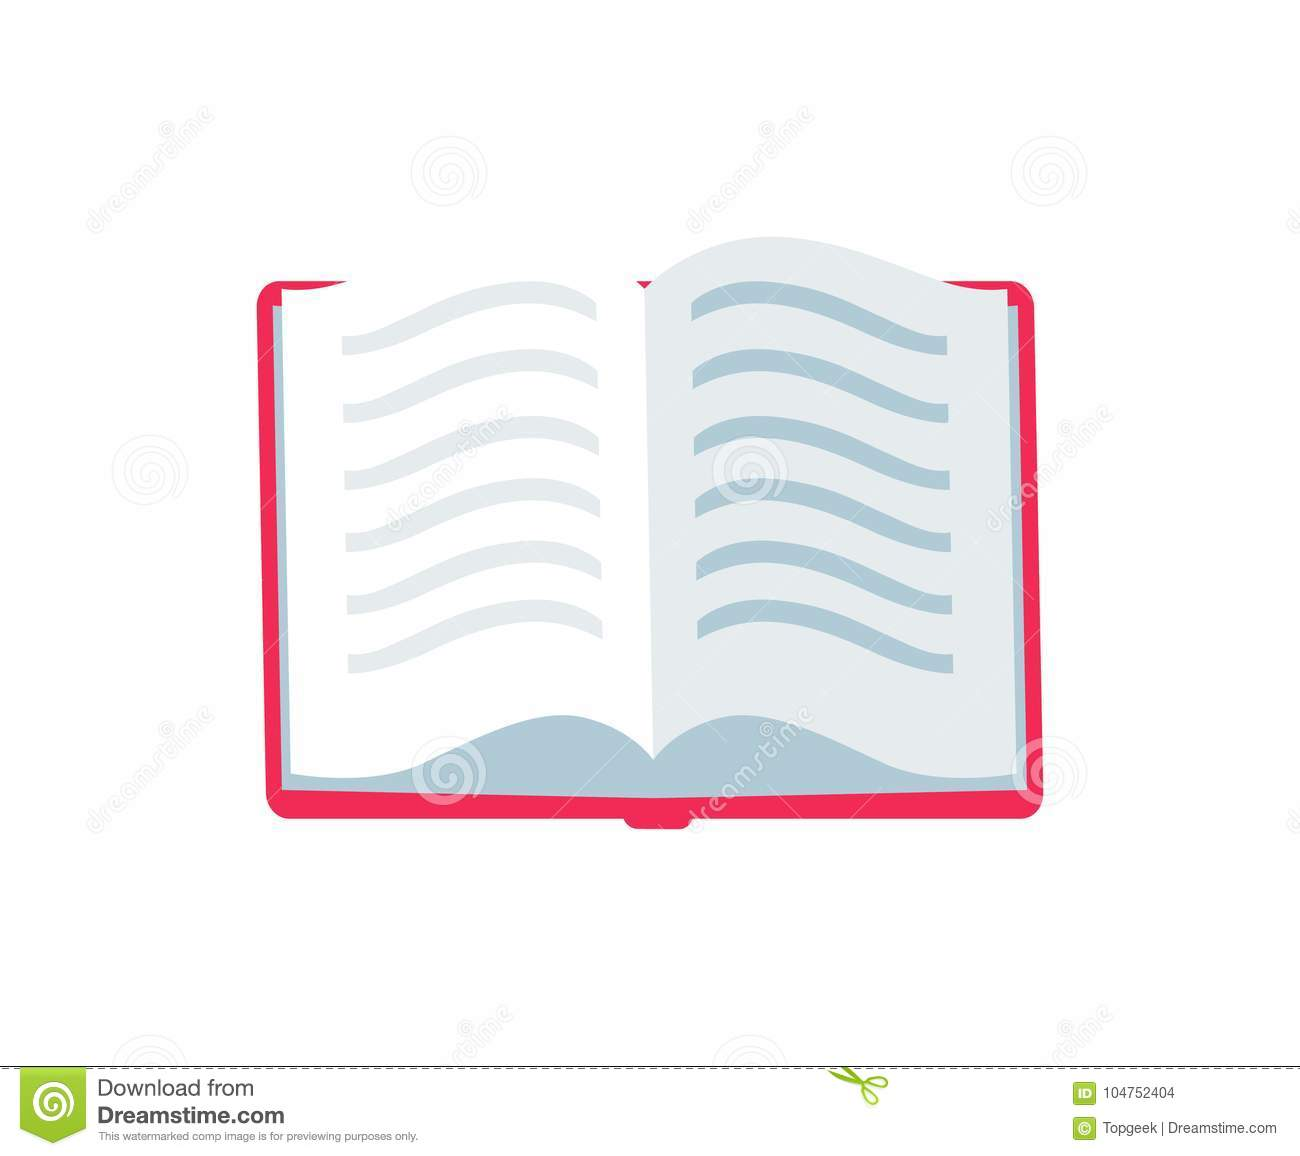 Book Cover Illustration Royalties : Open book with text icon vector illustration stock